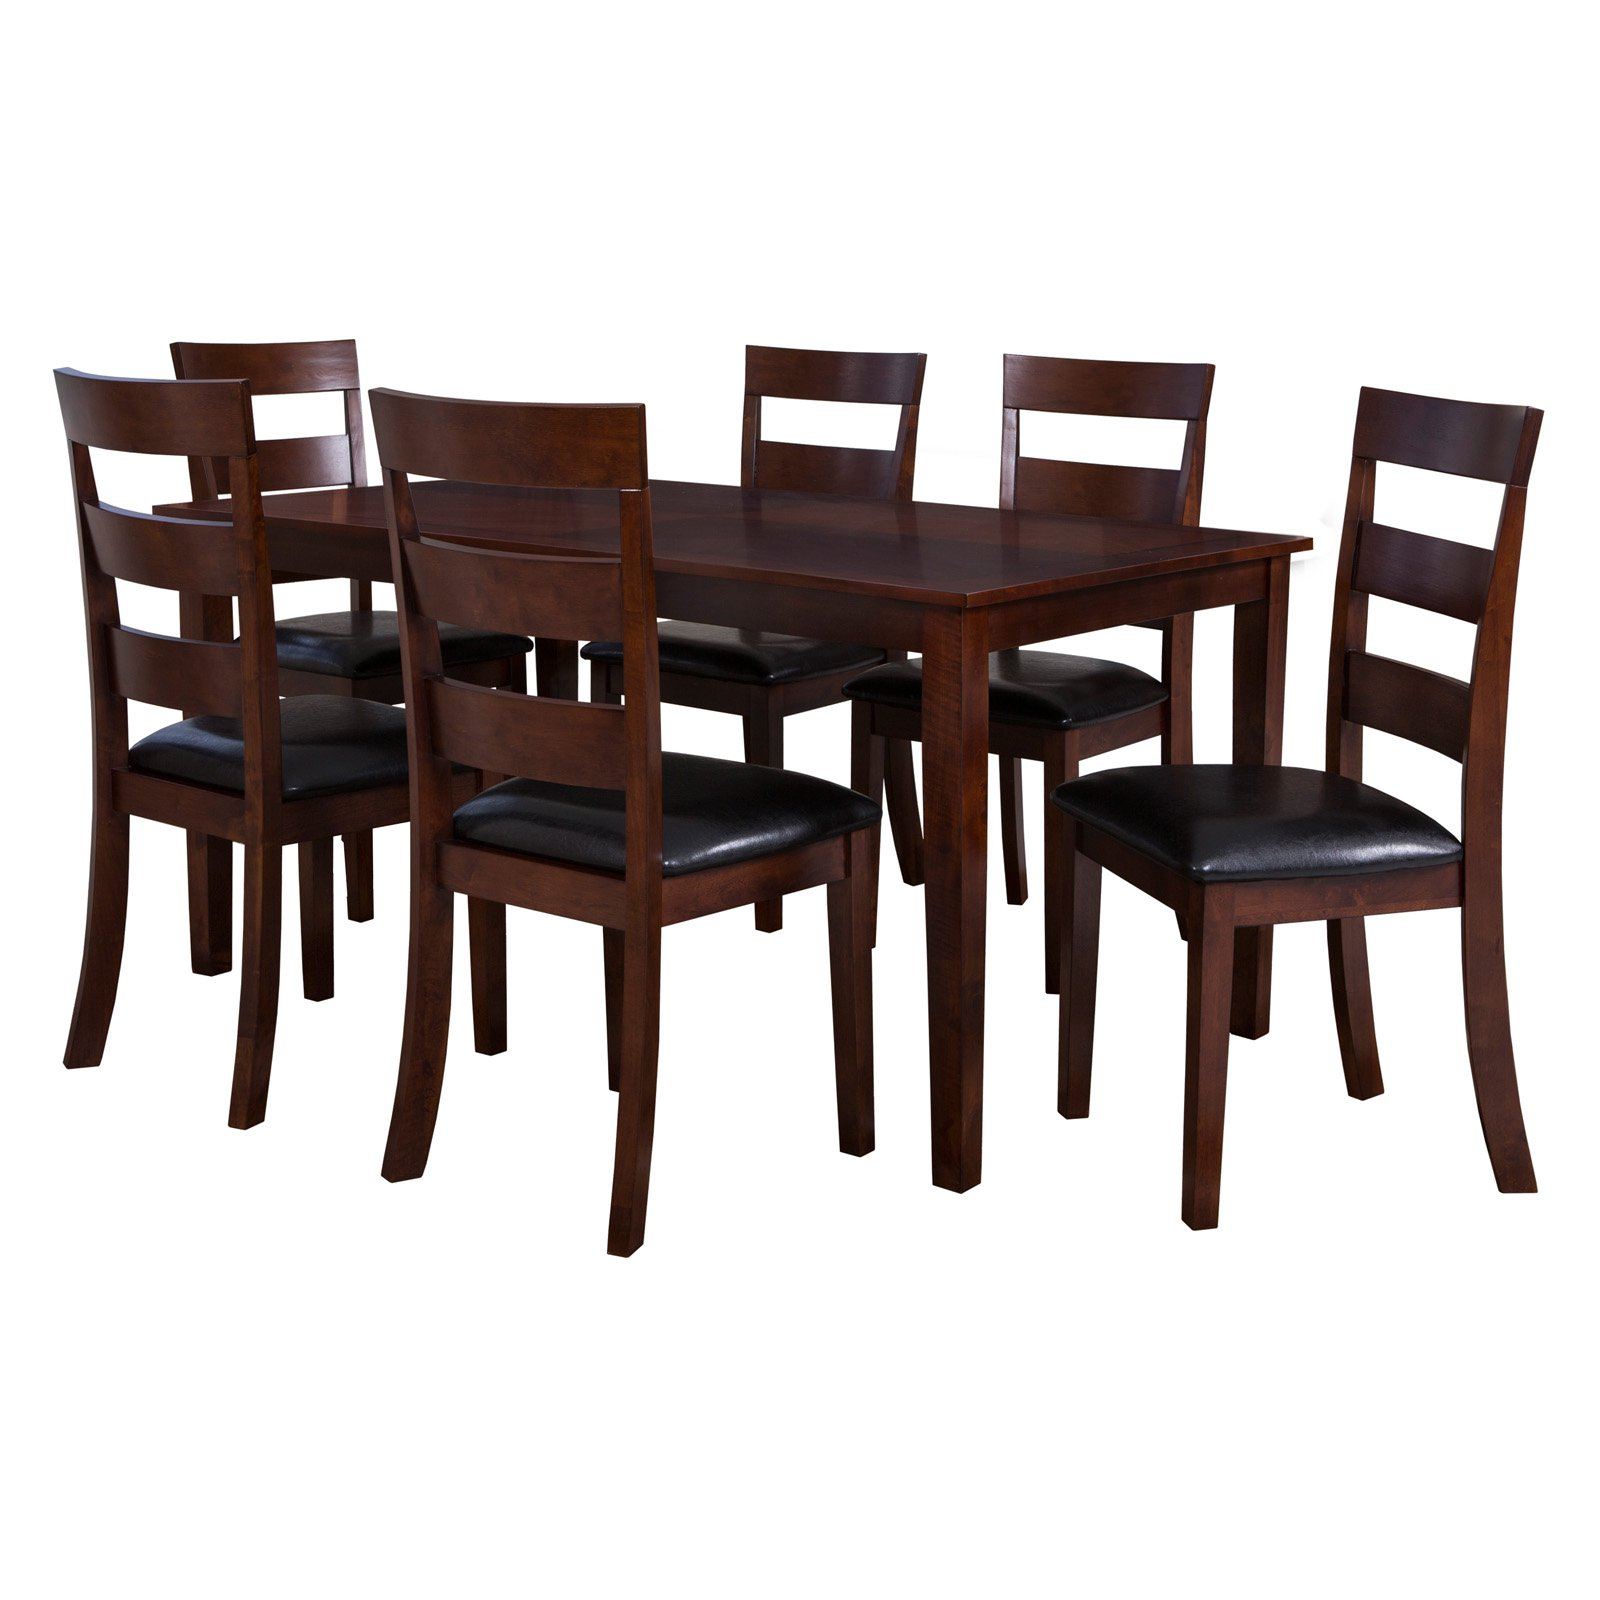 Linville 7 Piece Dining Set, Cherry